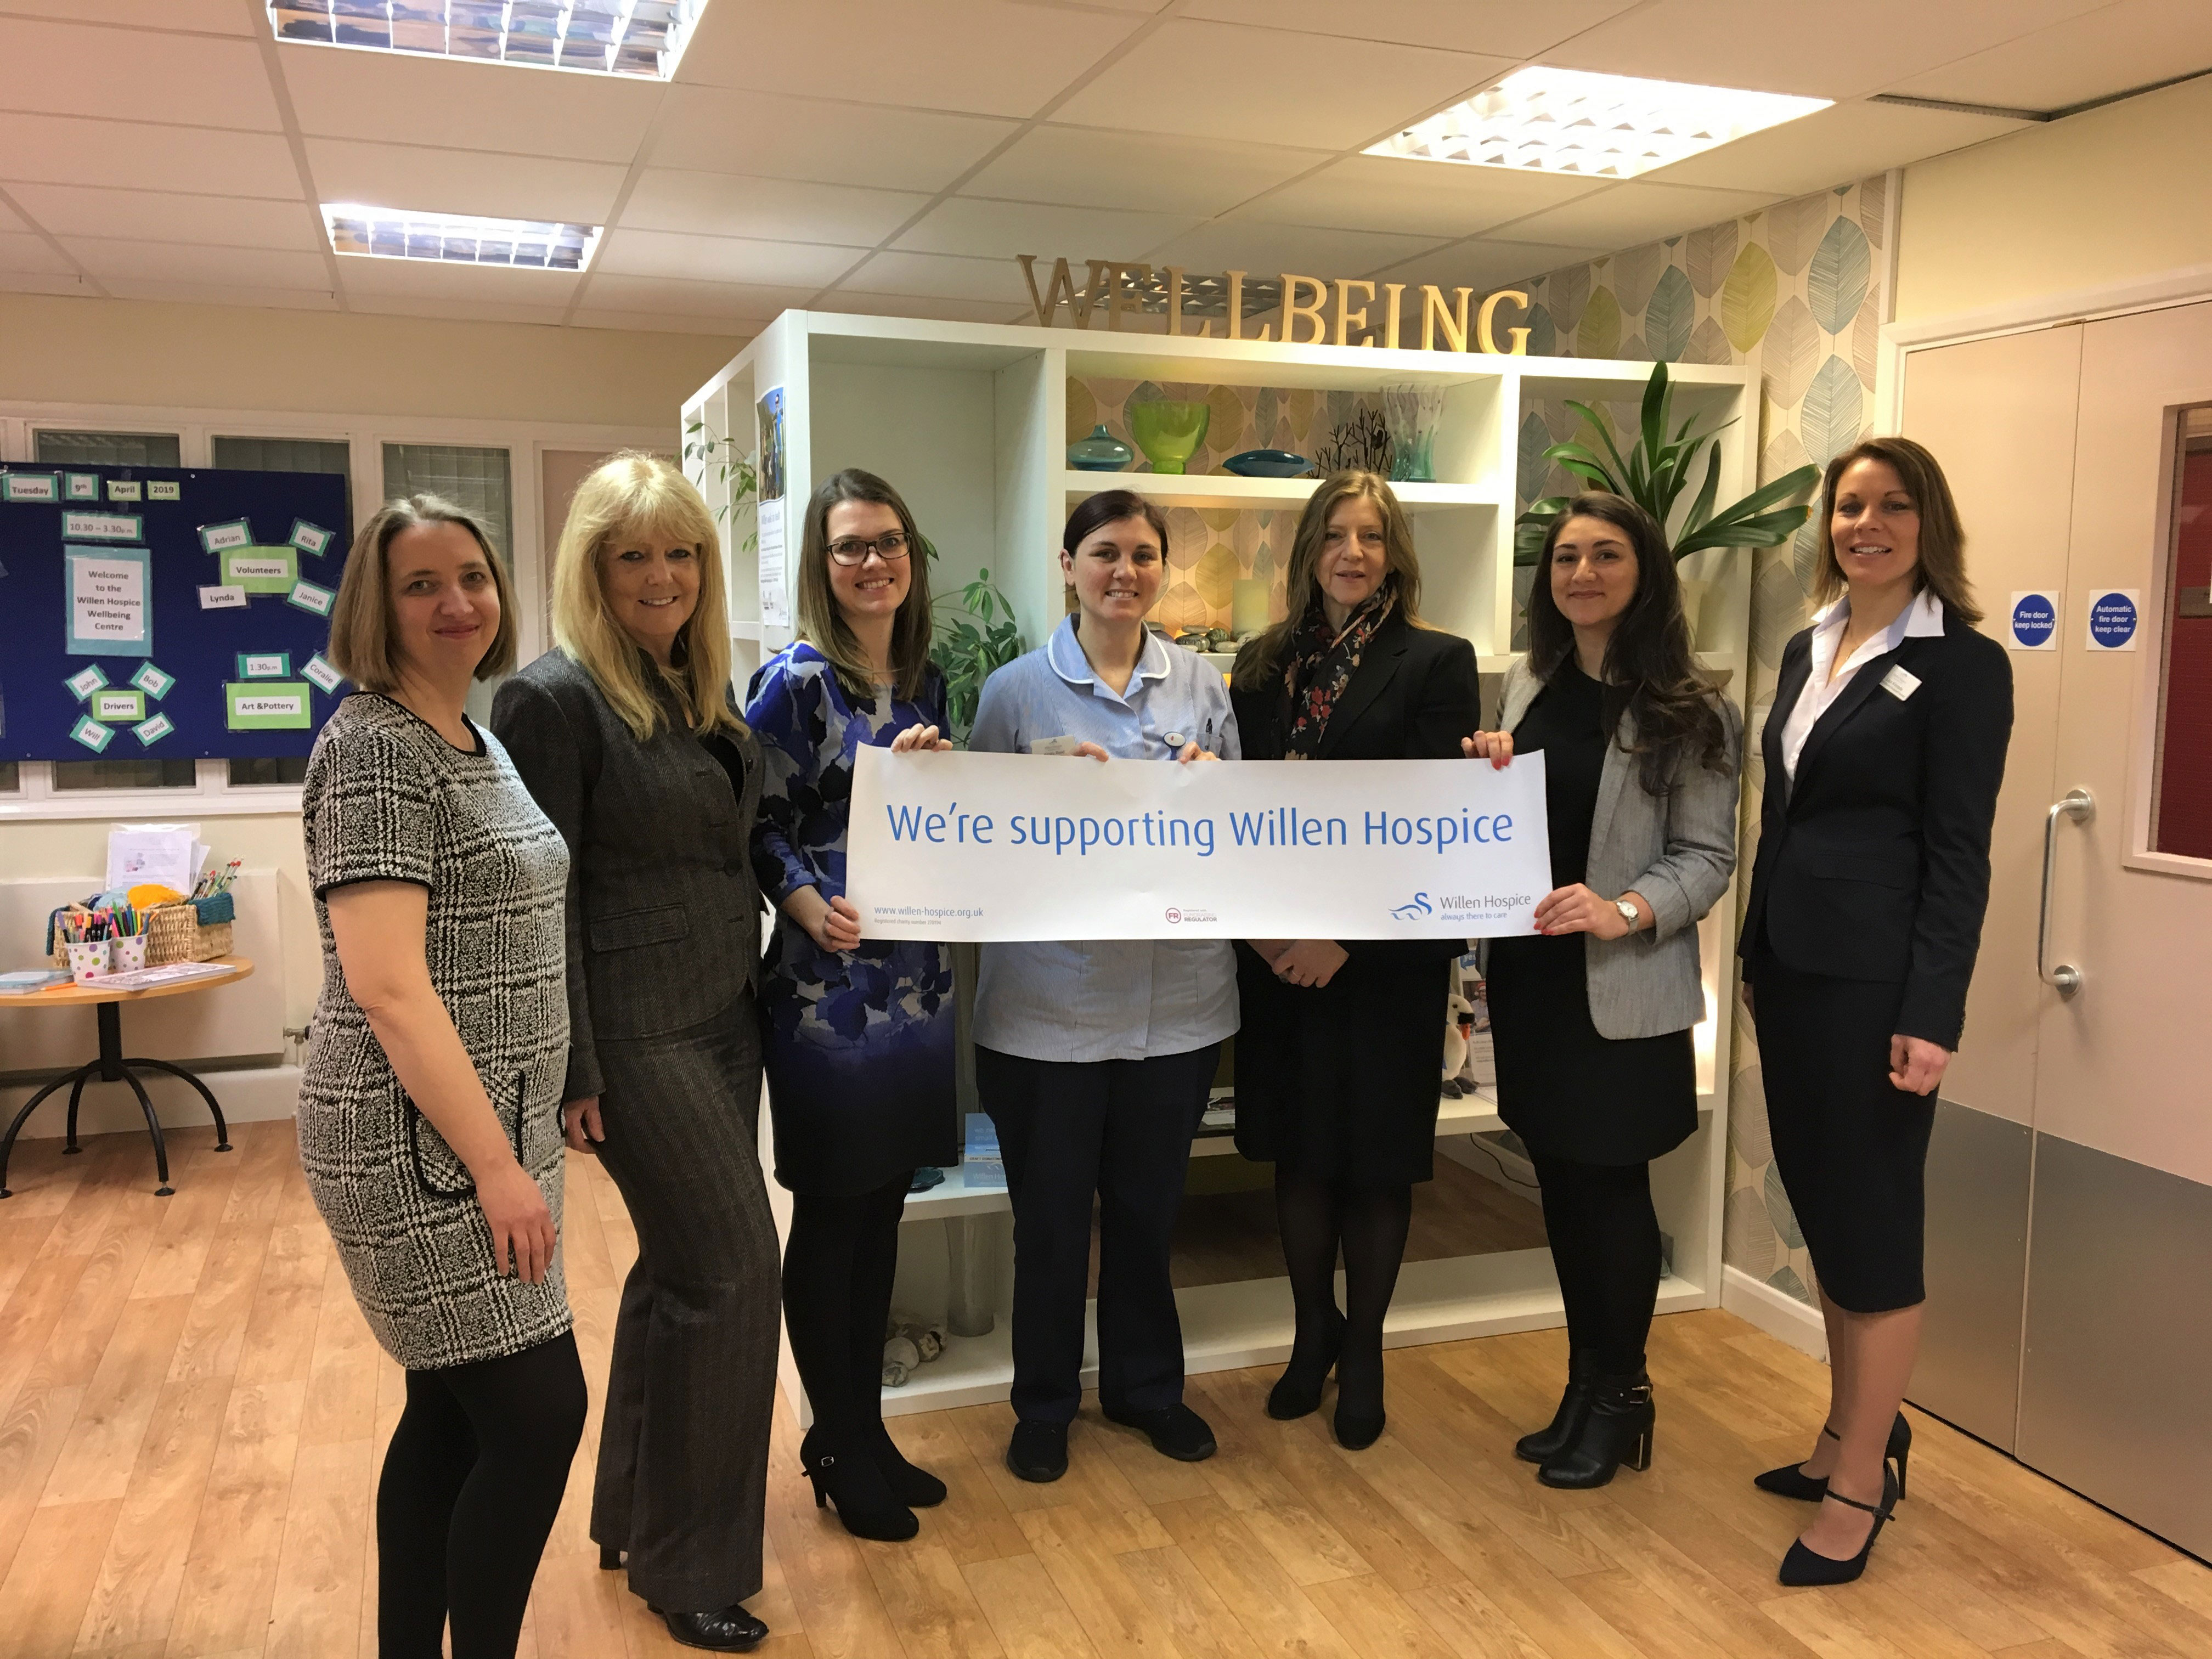 Make a Will month at Willen Hospice